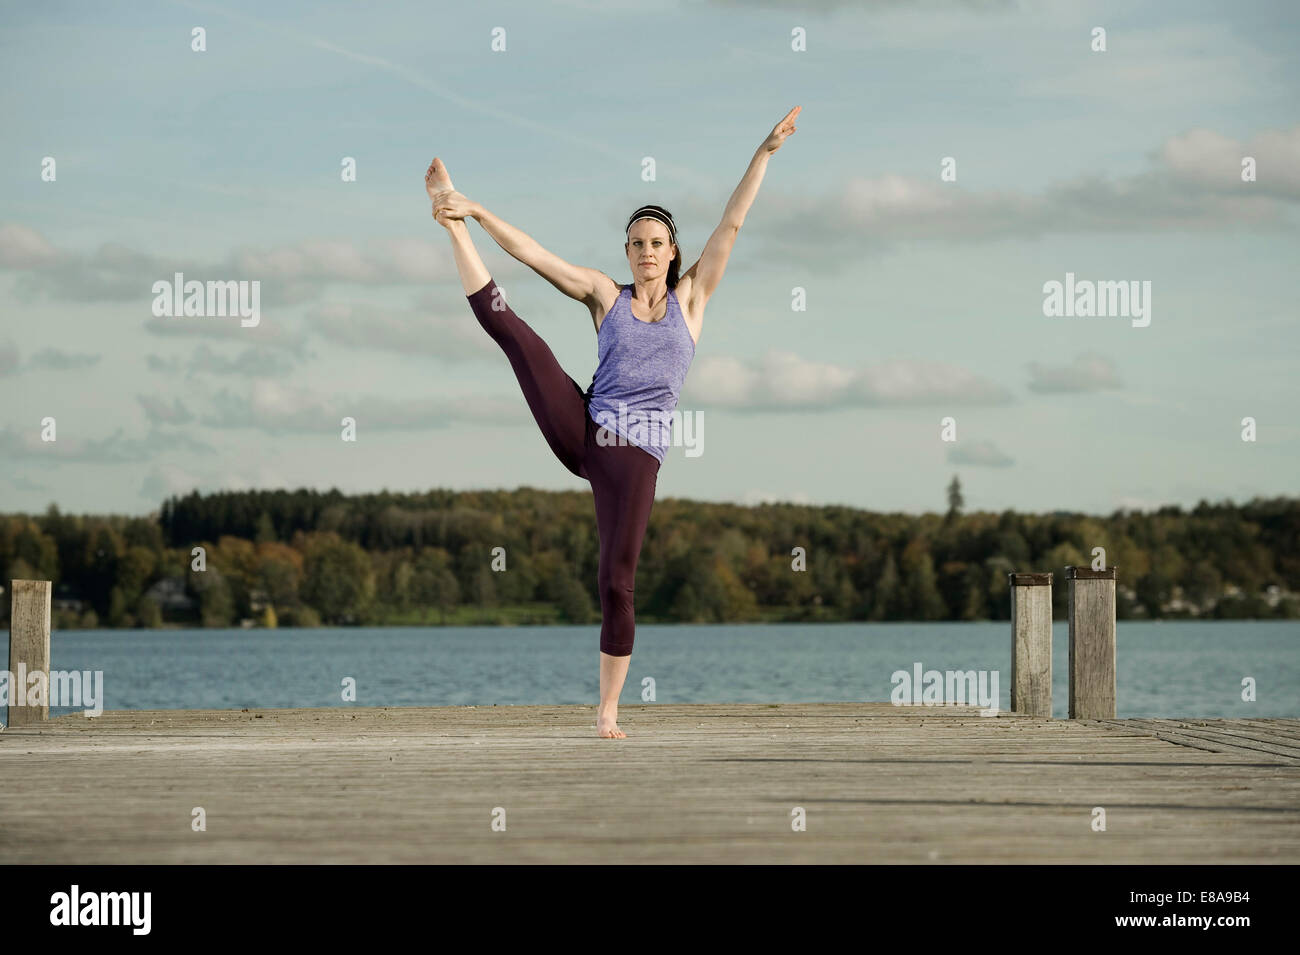 Woman practicing yoga on Jetty, Woerthsee, Bavière, Allemagne Photo Stock